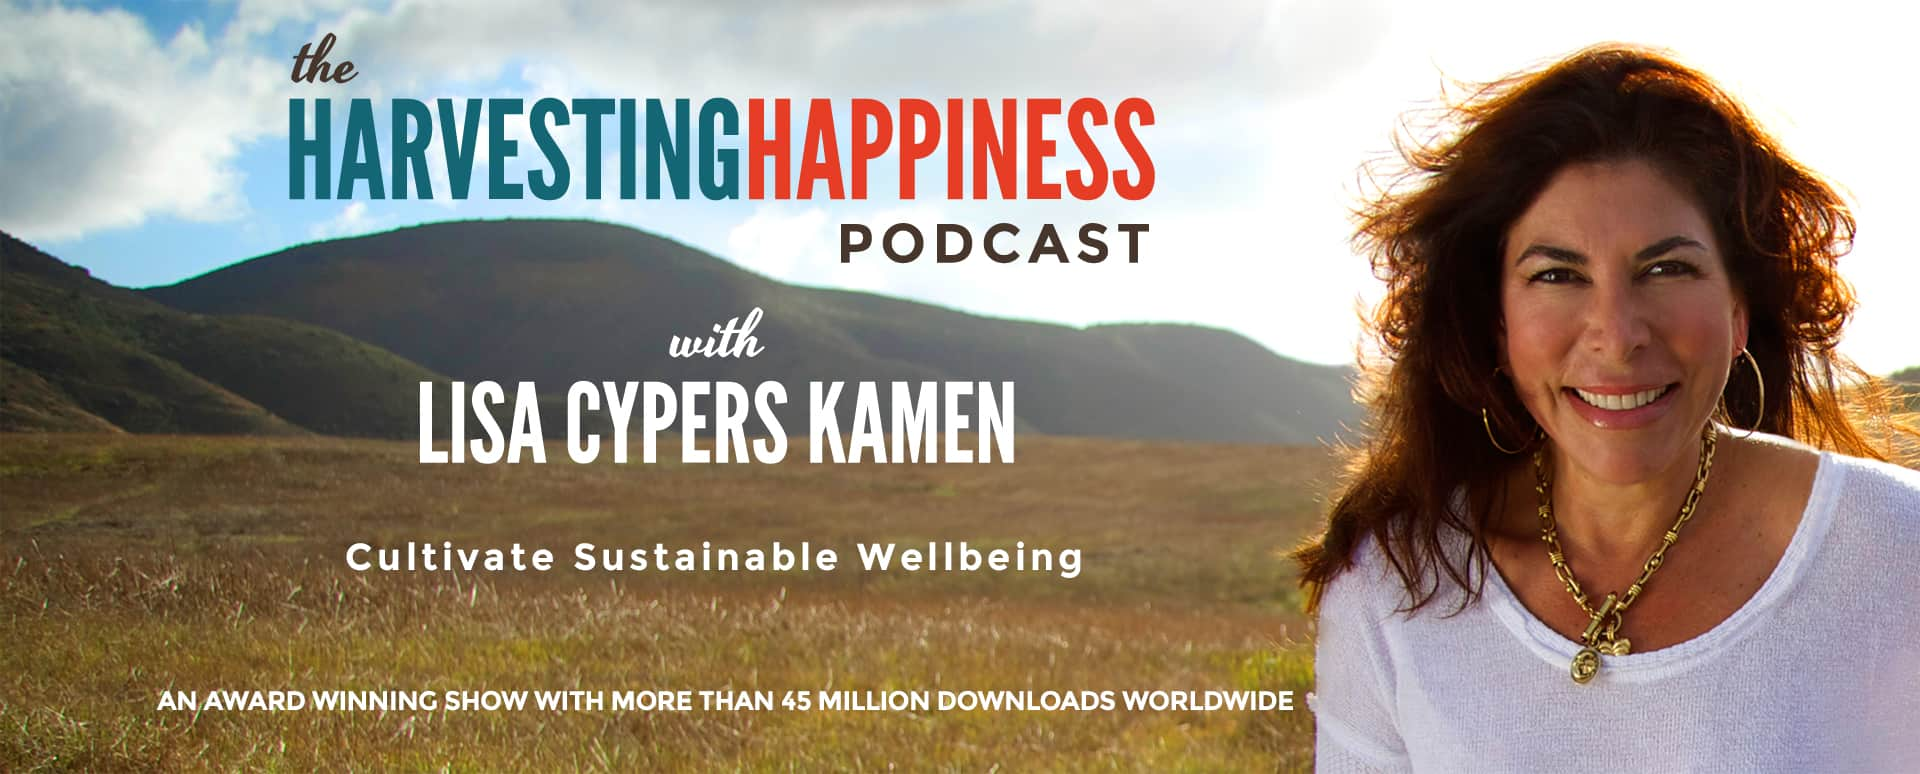 Lisa Cypers Kamen with green mountains and a blue sky behind - harvesting happiness